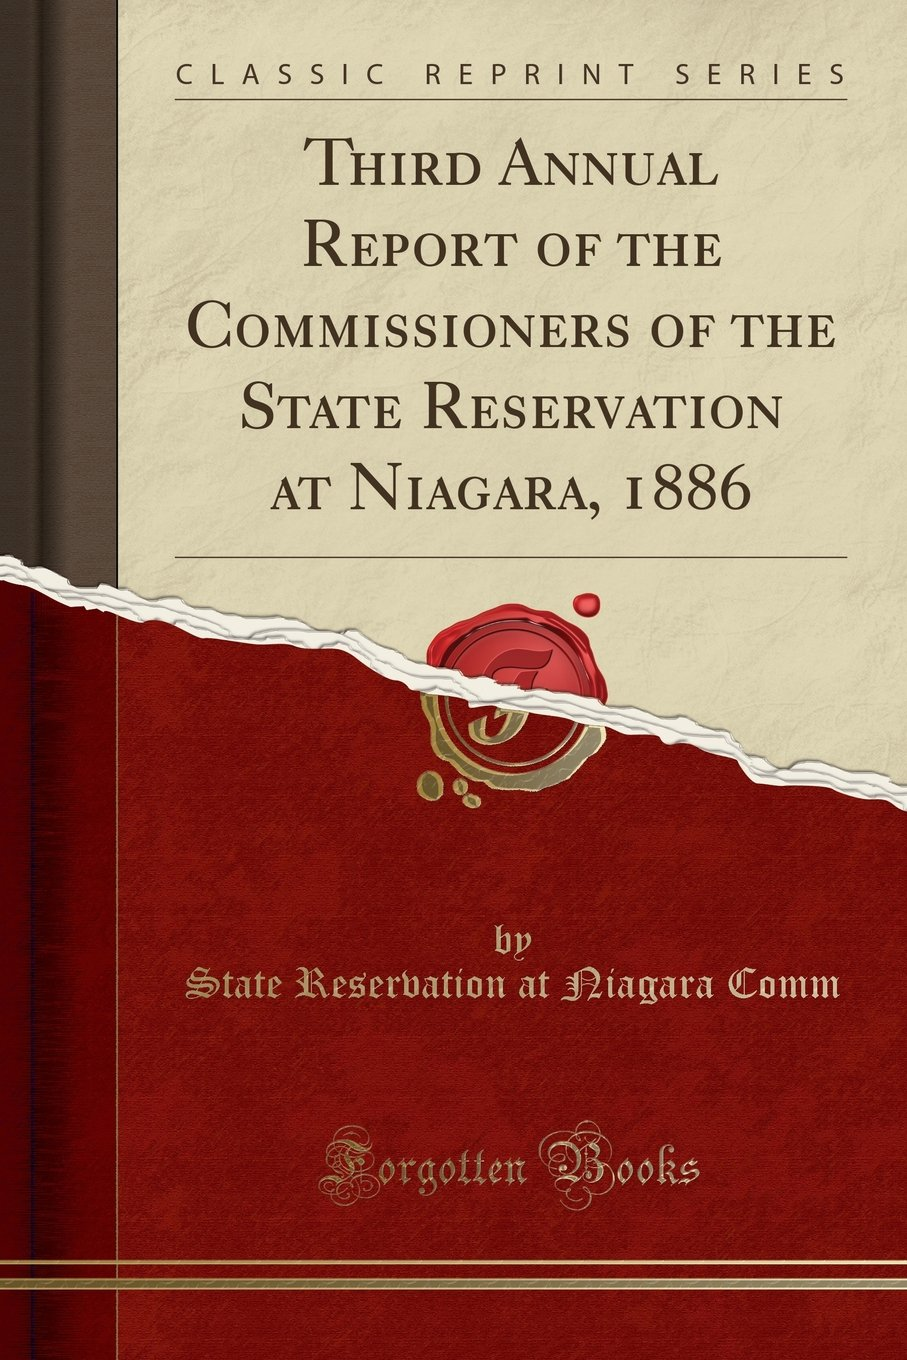 Download Third Annual Report of the Commissioners of the State Reservation at Niagara, 1886 (Classic Reprint) ebook